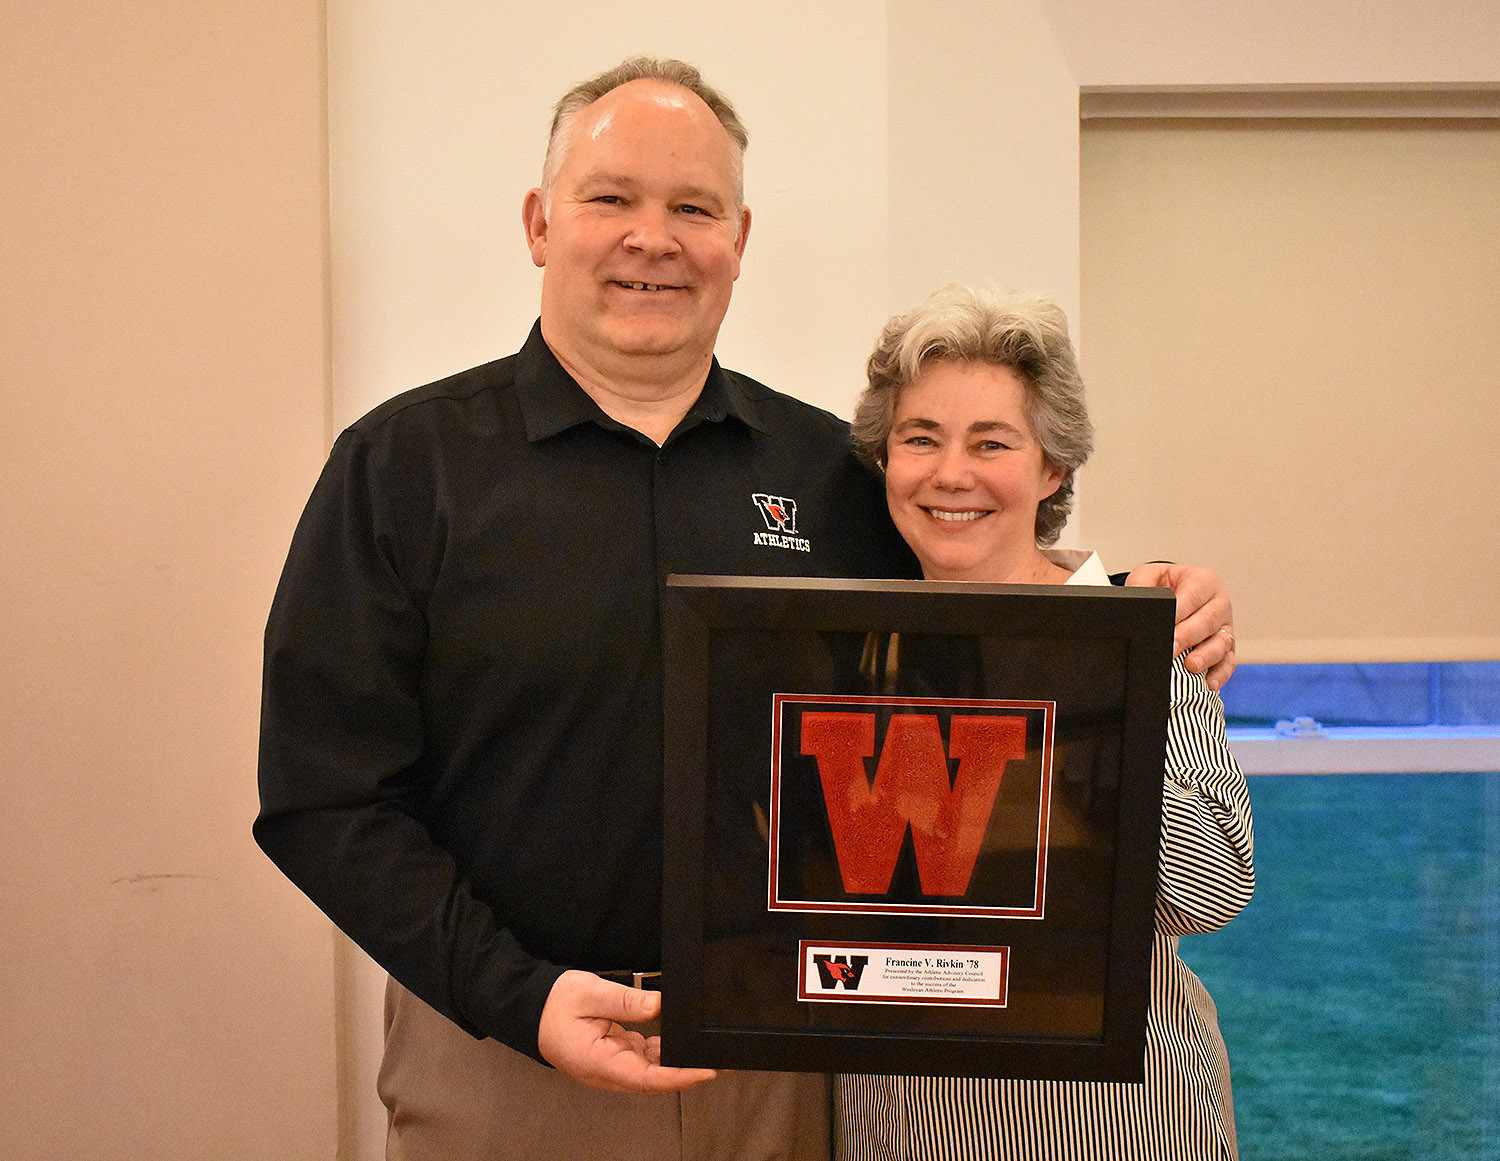 Francine Rivkin '78 was honored with the Cardinal Award, the Athletic Advisory Council's recognition of extraordinary contributions and dedication to the success of the Wesleyan Athlete Program. Rivkin is pictured with Mike Whalen, the Frank V. Sica Director of Athletics and chair of Physical Education, at left.